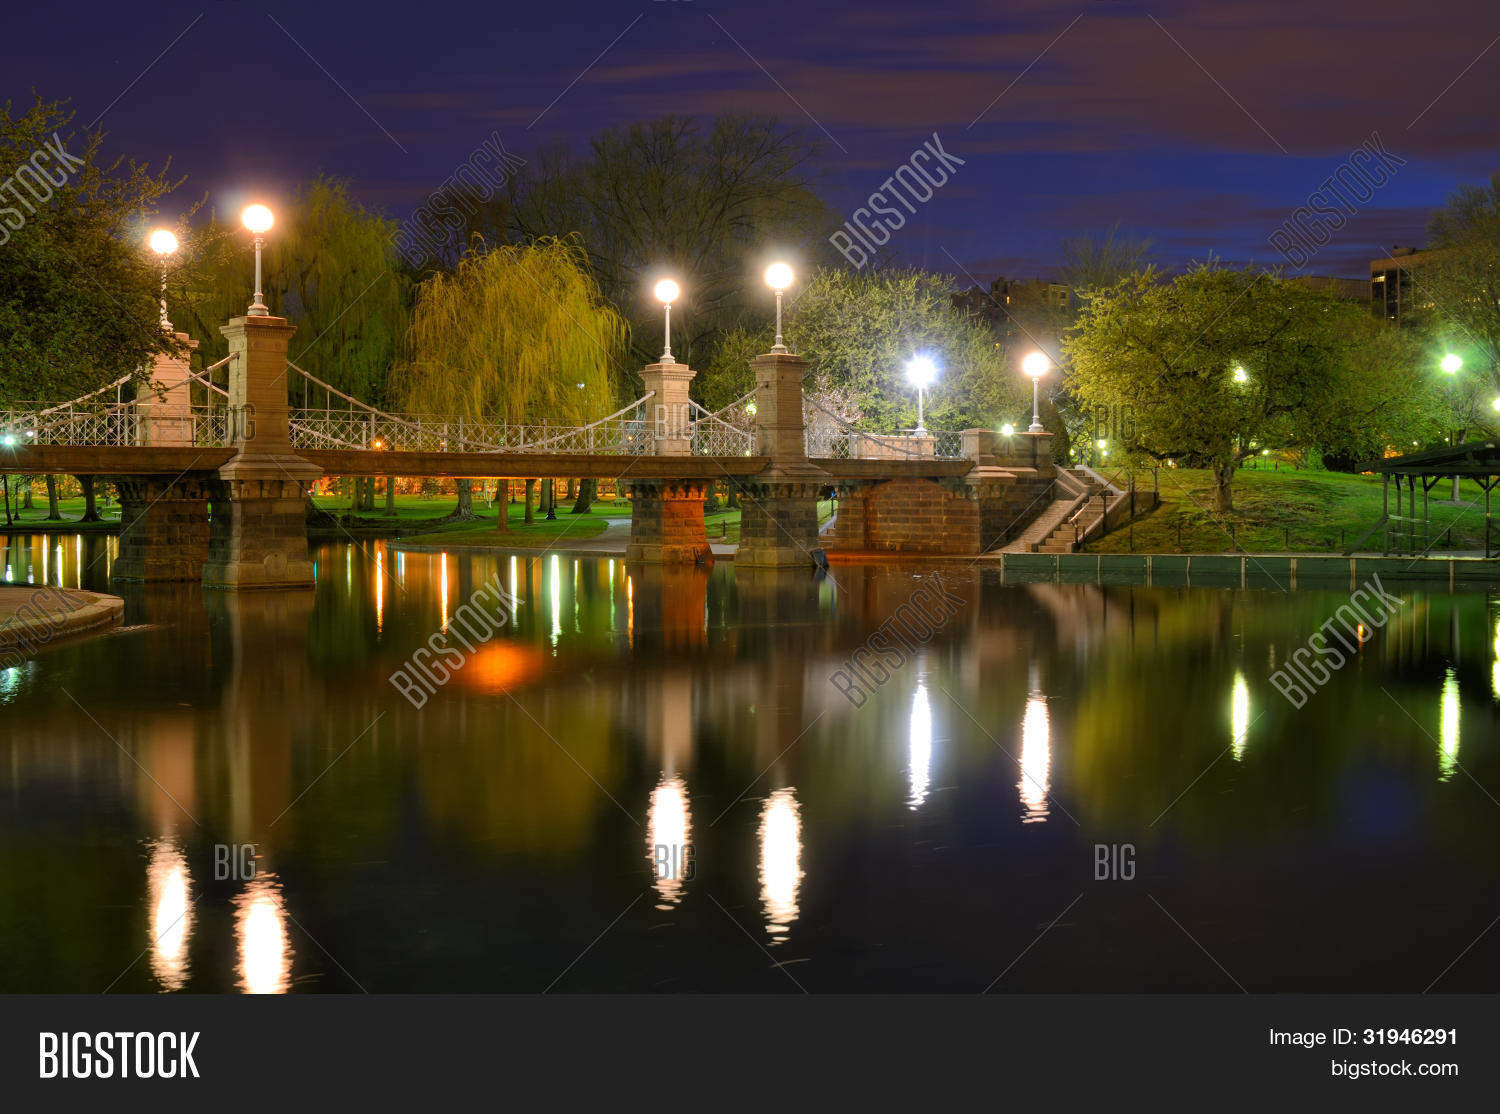 Lagoon Bridge Boston Image & Photo (Free Trial) | Bigstock